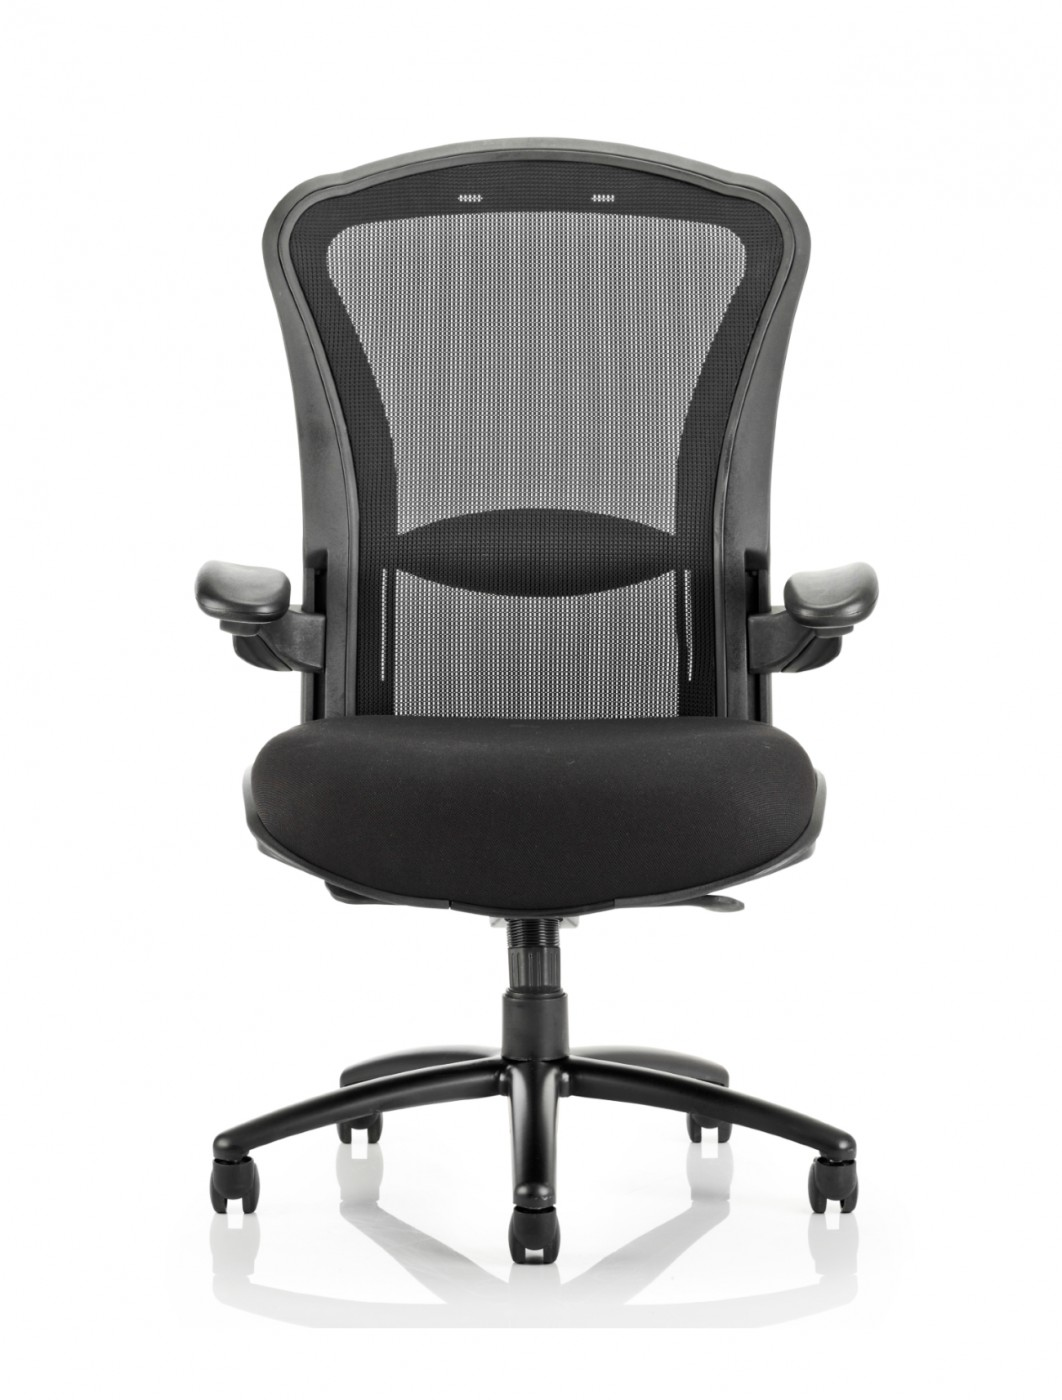 houston office chairs ergonomic furniture uk heavy duty task operator chair op000181 enlarged view